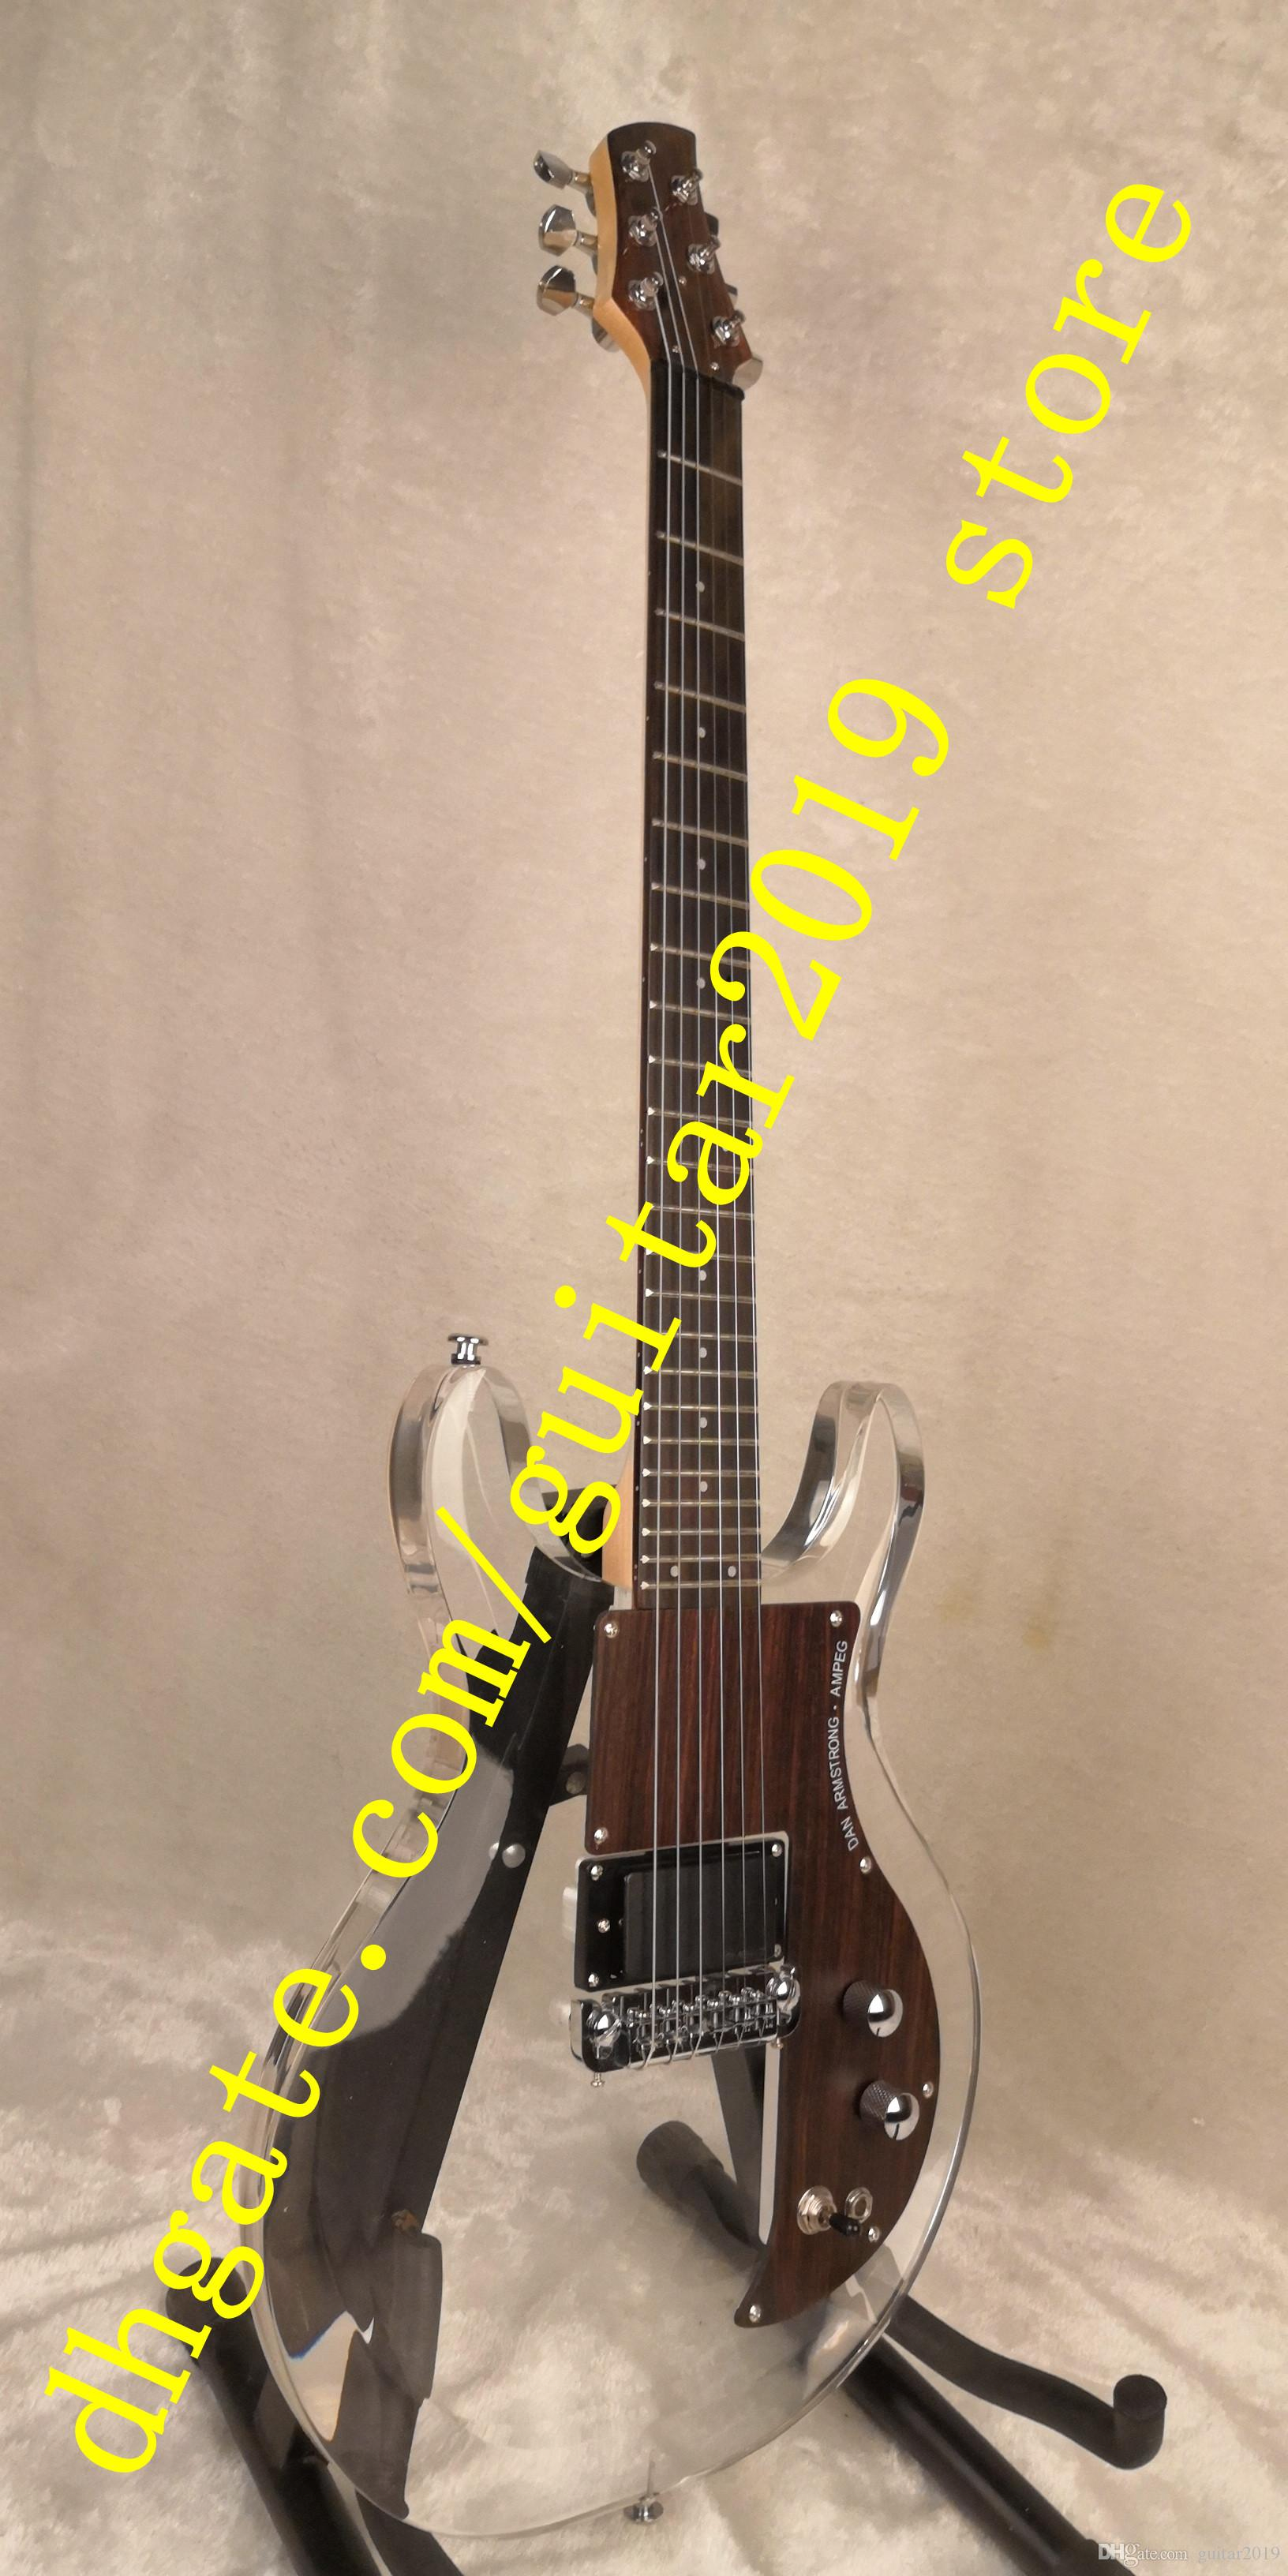 China 6 string guitar acrylic body and maple neck Silver hardware rosewood guard electric guitar free shipping